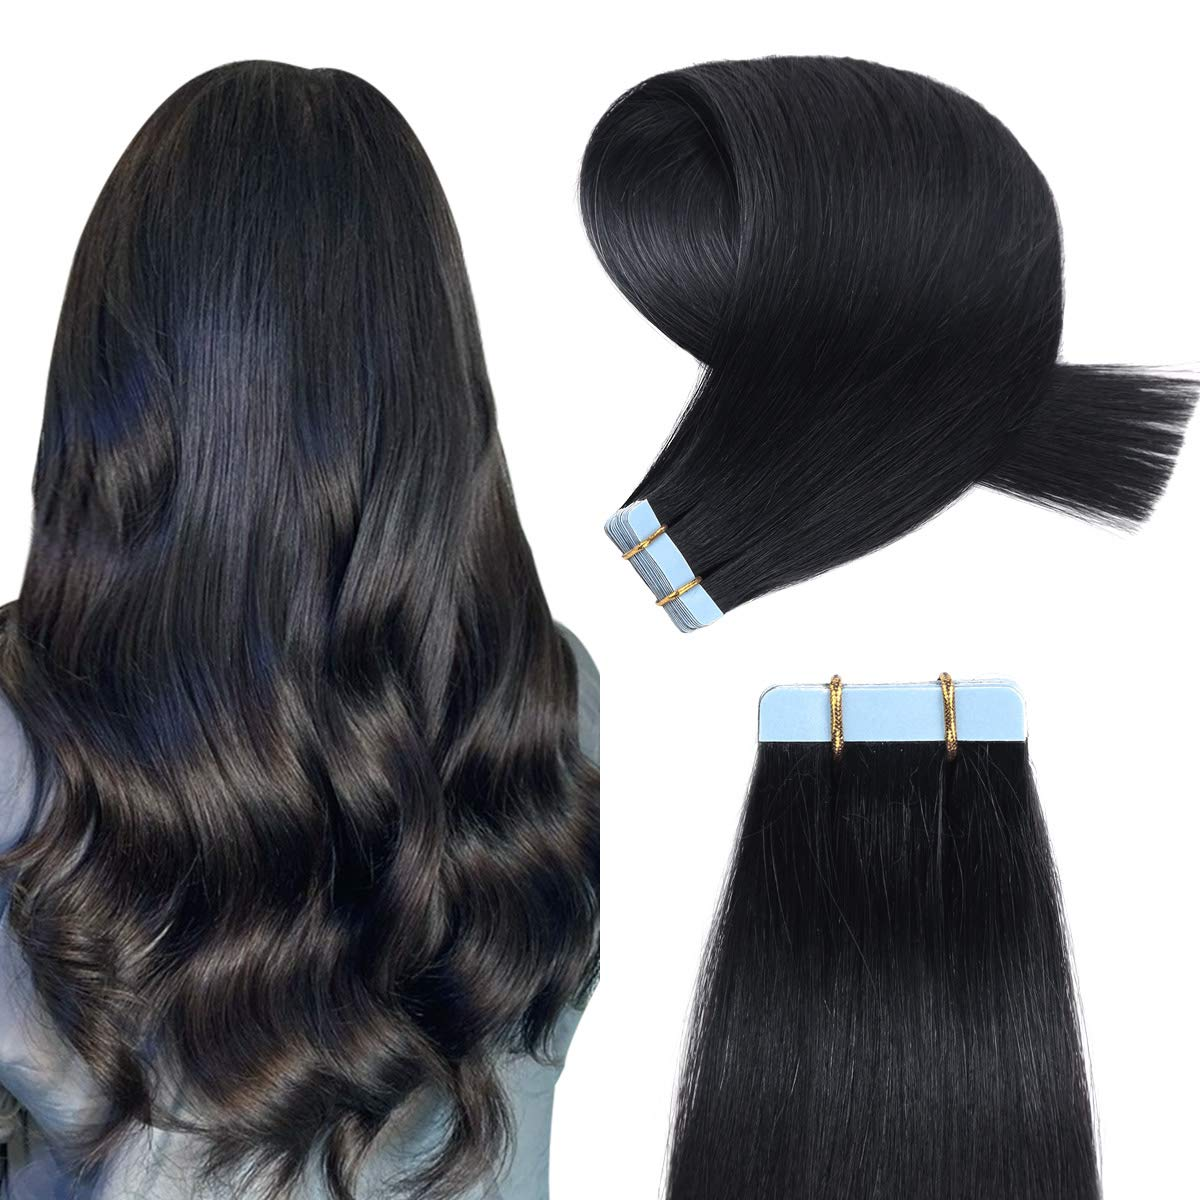 YILITE Tape in Hair Extensions Human Hair Silky Straight Remy Human Hair Extensions Tape in 20pcs 50g Jet Black Color 18 inches Tape in Extensions